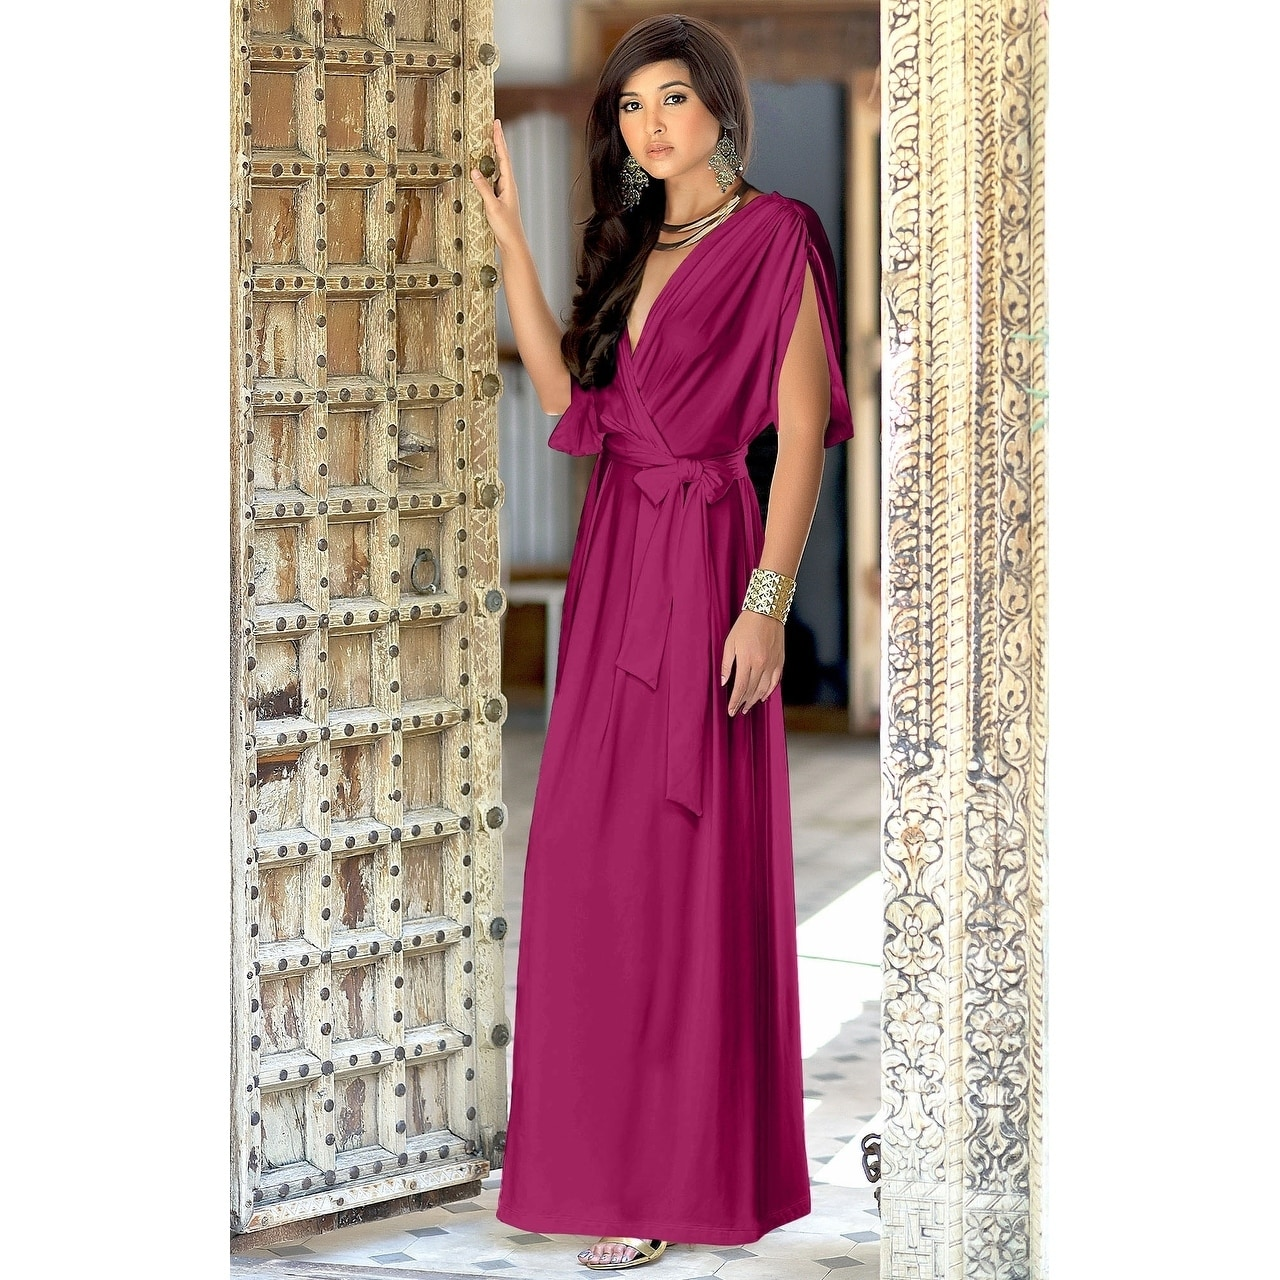 56c7ab96b3f Shop Koh Koh Women s Batwing Dolman Sleeve Elegant Cocktail Gown Maxi Dress  - Free Shipping Today - Overstock - 10835722